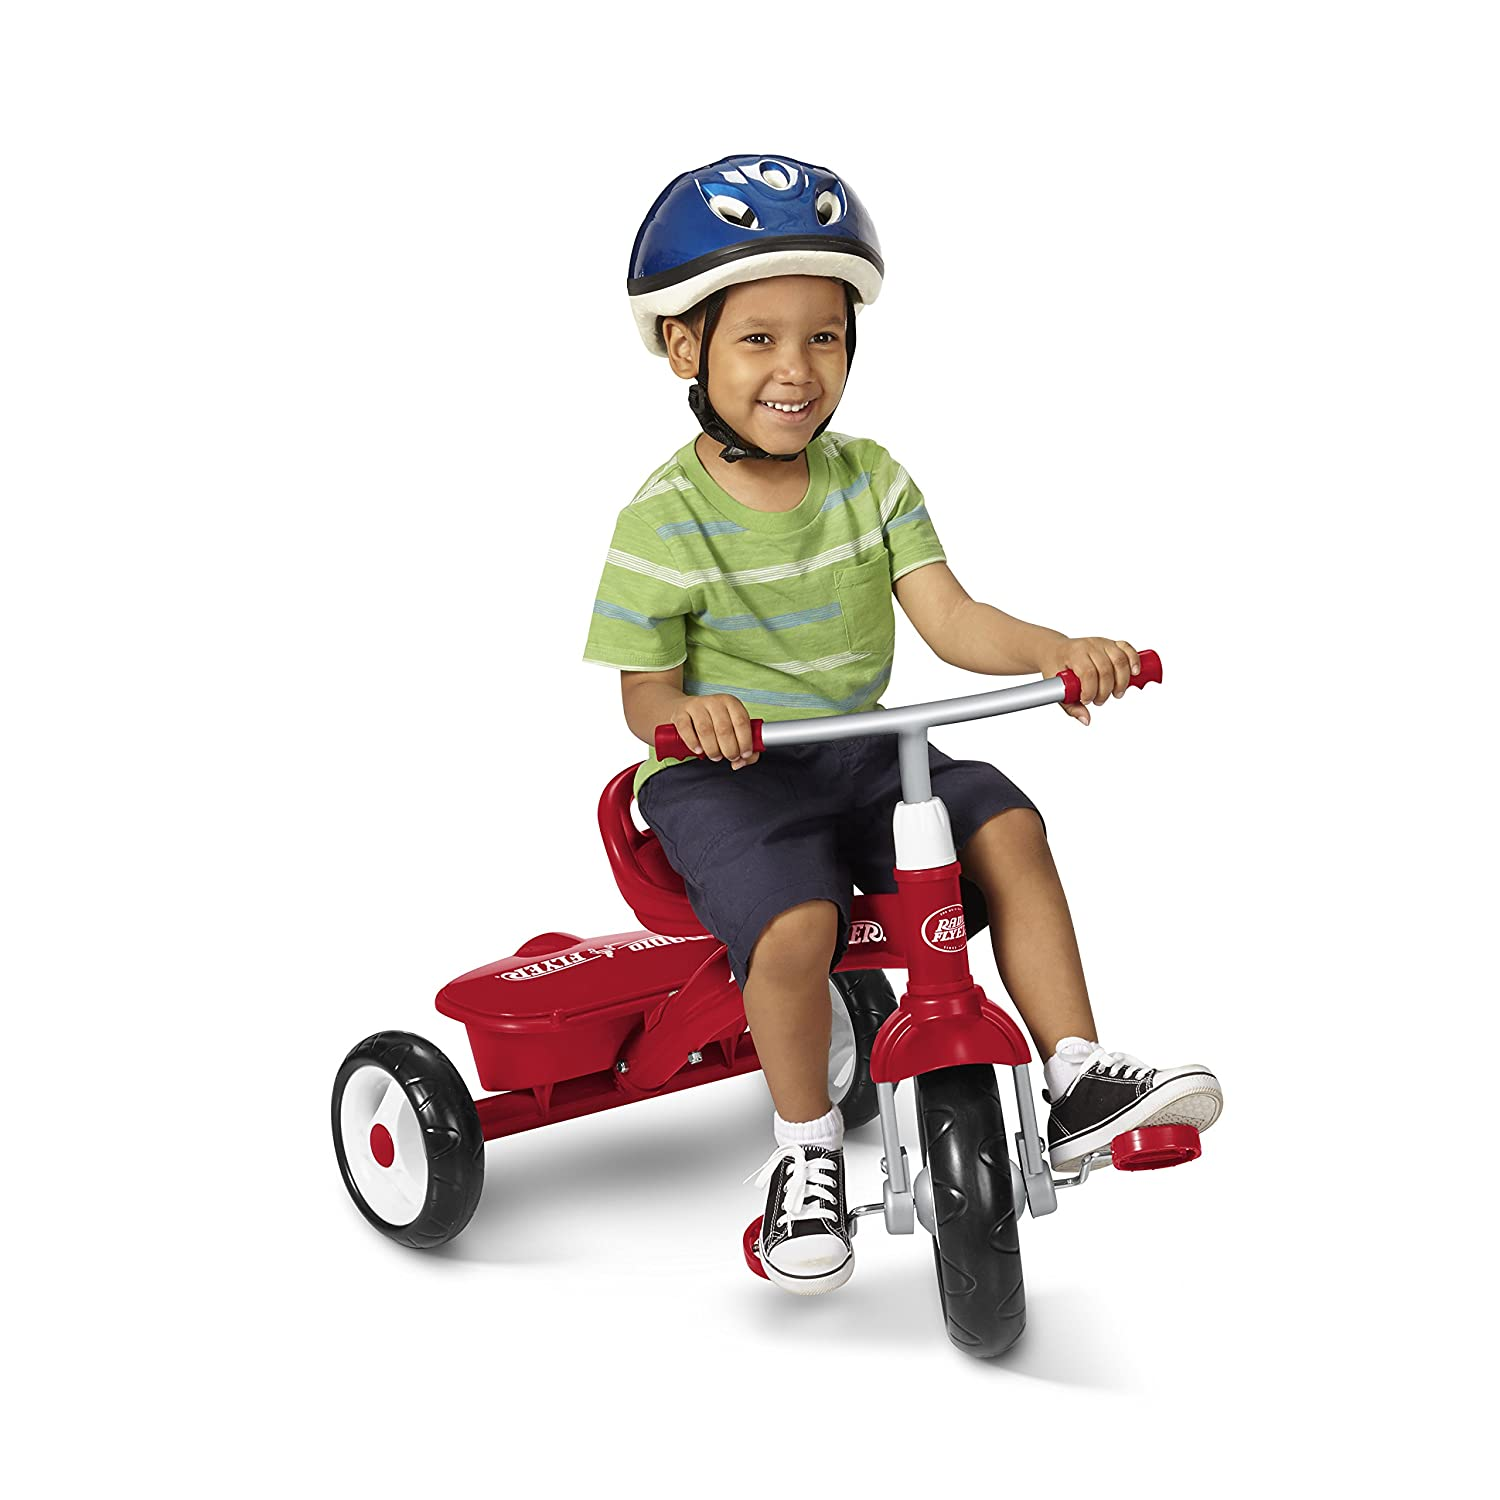 Pathfinder Wagon in addition 32837100 also Radio Flyer Ready To Ride Folding Trike furthermore 787707791044638569 furthermore Best Toys Gifts For 3 Year Old Girls. on toy radio flyer trike